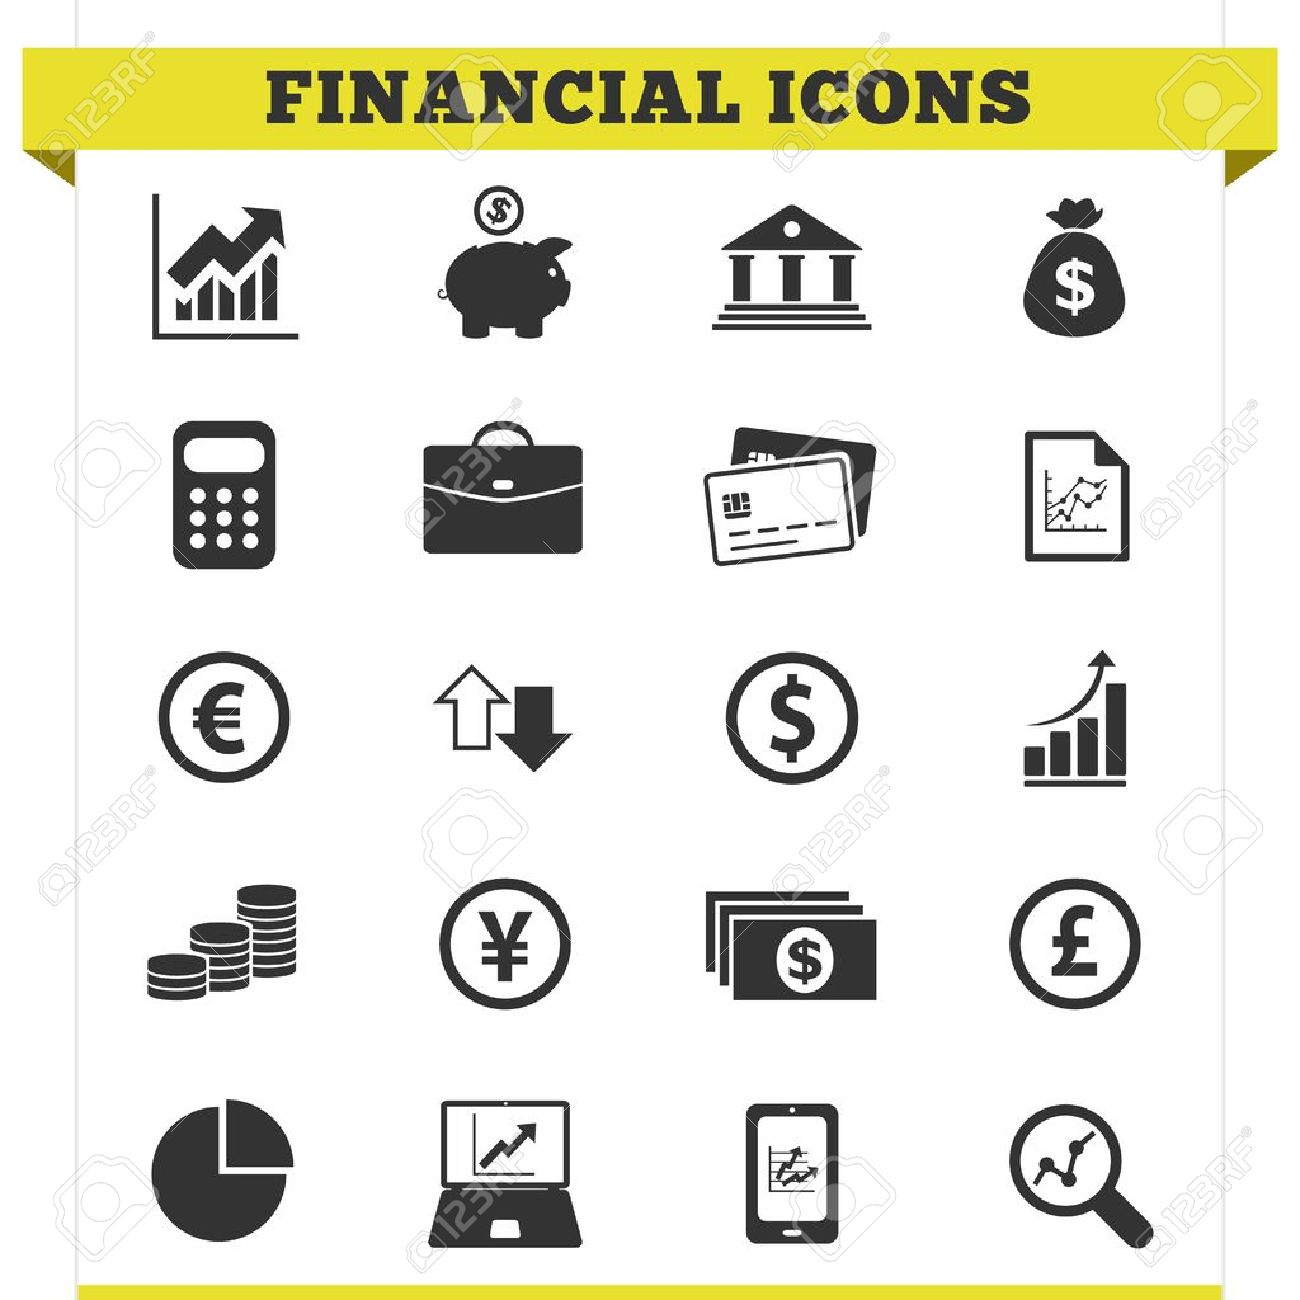 Vector set of financial and money related icons and design elements for web pages, bank, online trading and loan business services  Illustration on white background Stock Vector - 19495025